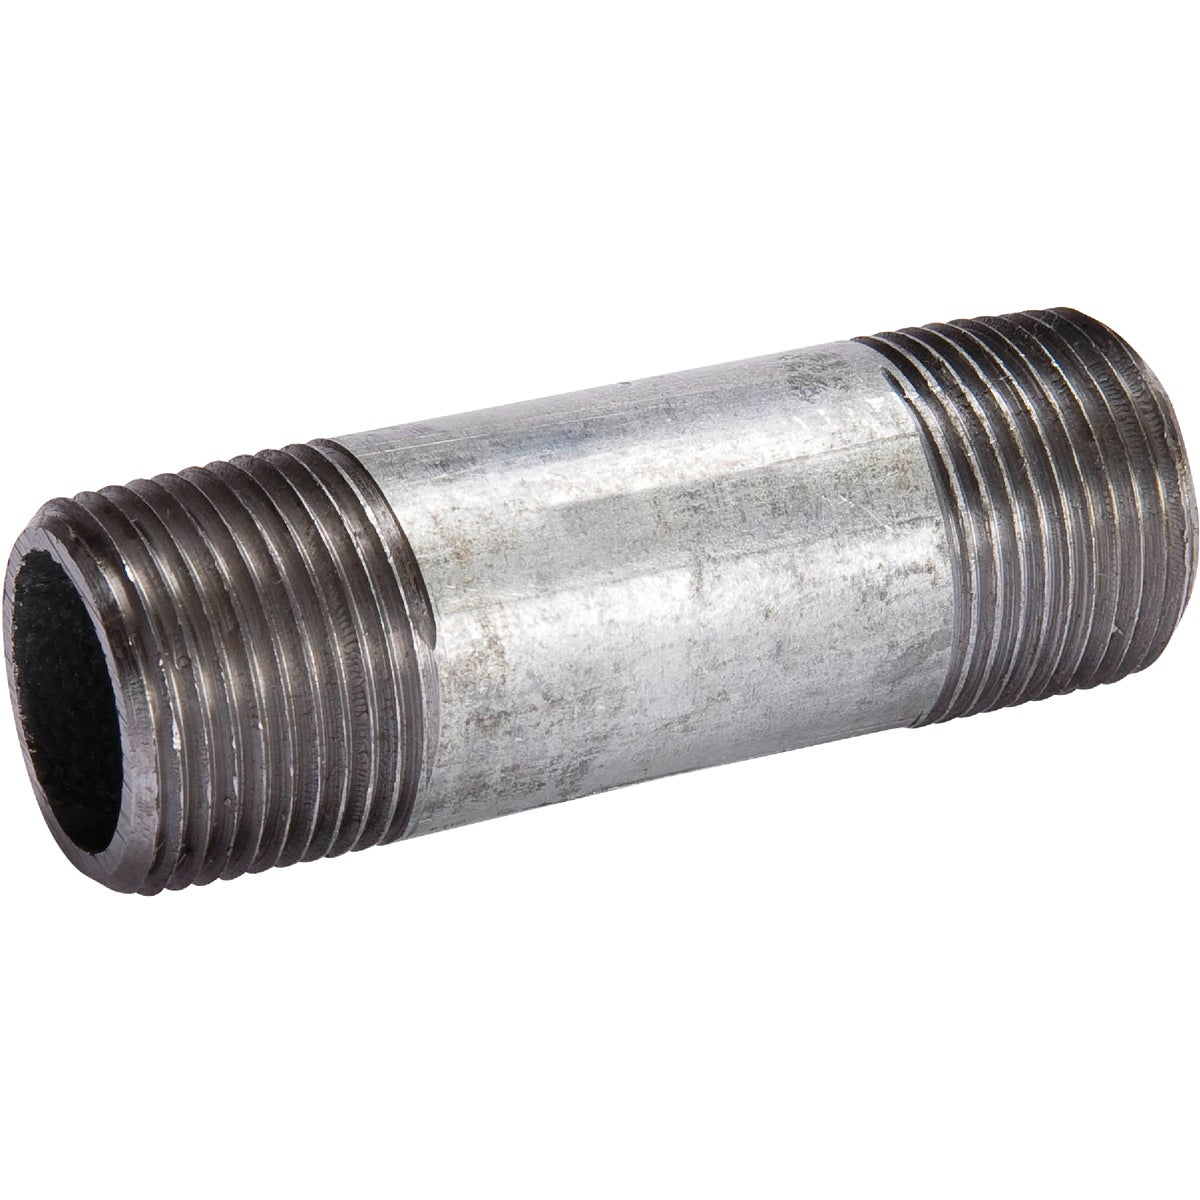 1-1/2X3-1/2 GALV NIPPLE - 10805 by Southland Pipe Nippl